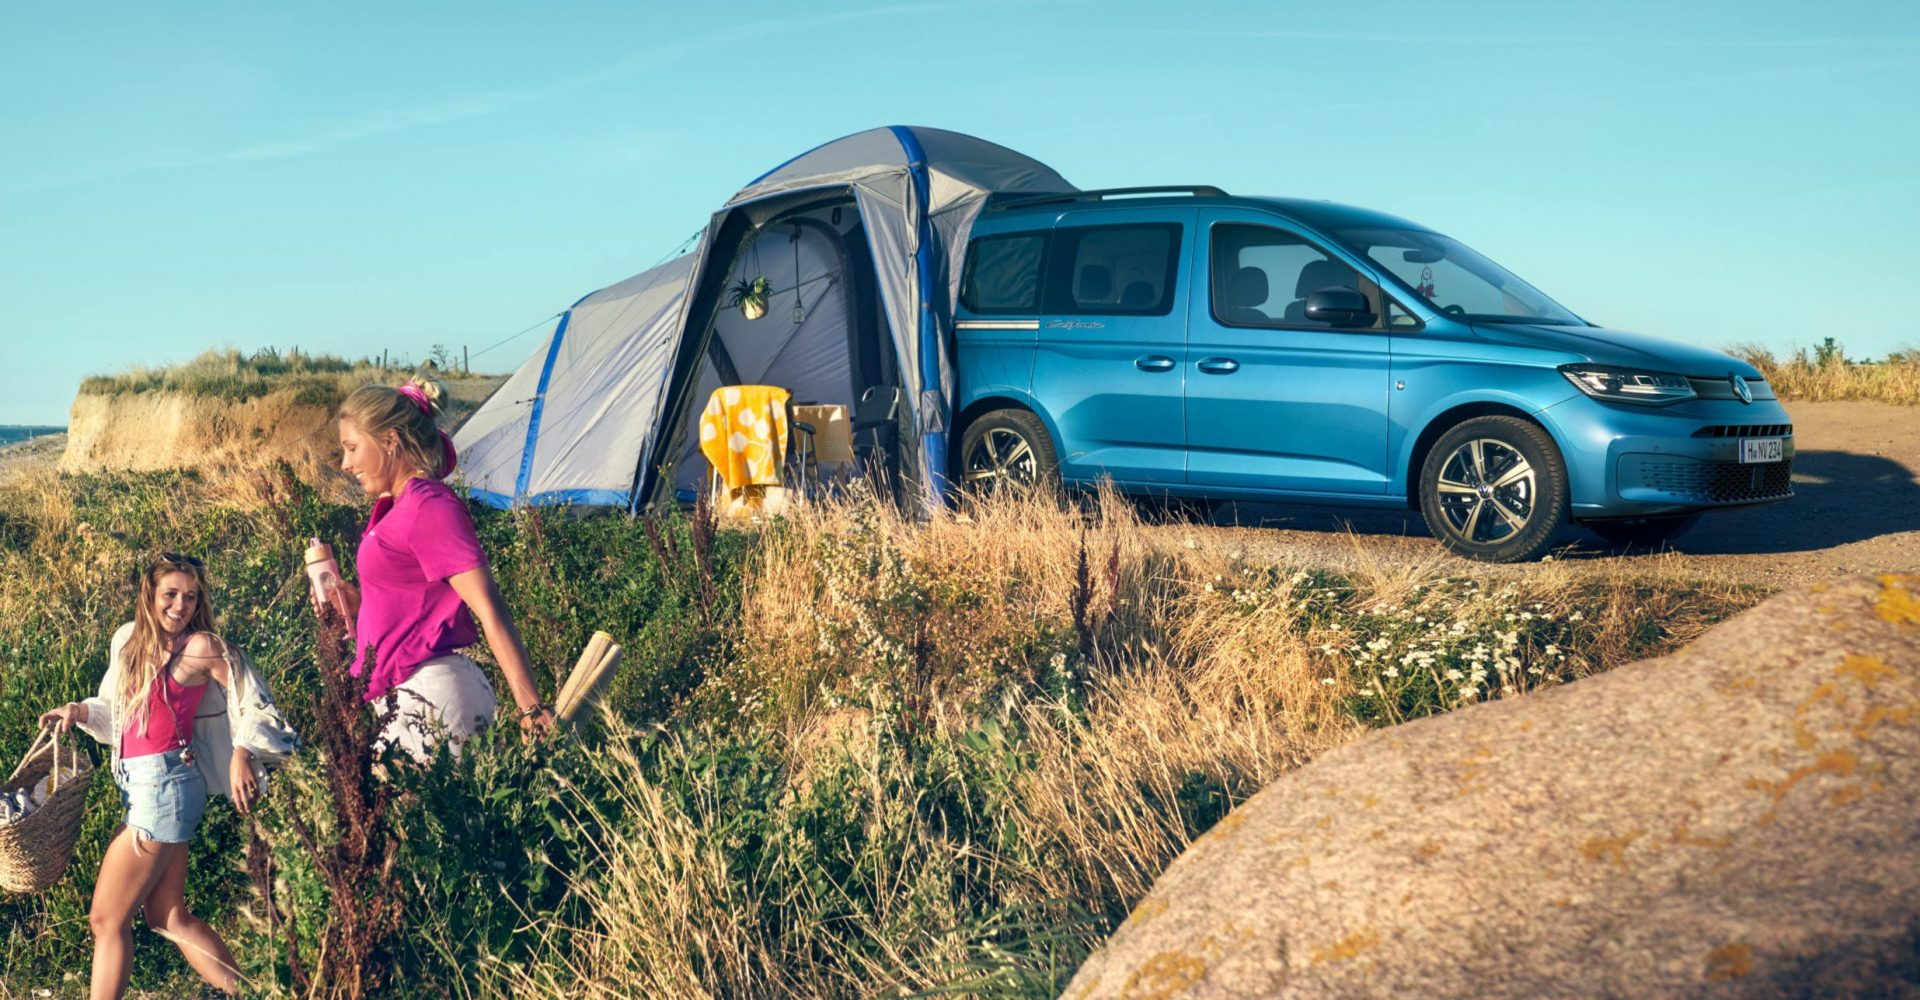 The VW Caddy California will cost £29,695 when it goes on sale next month